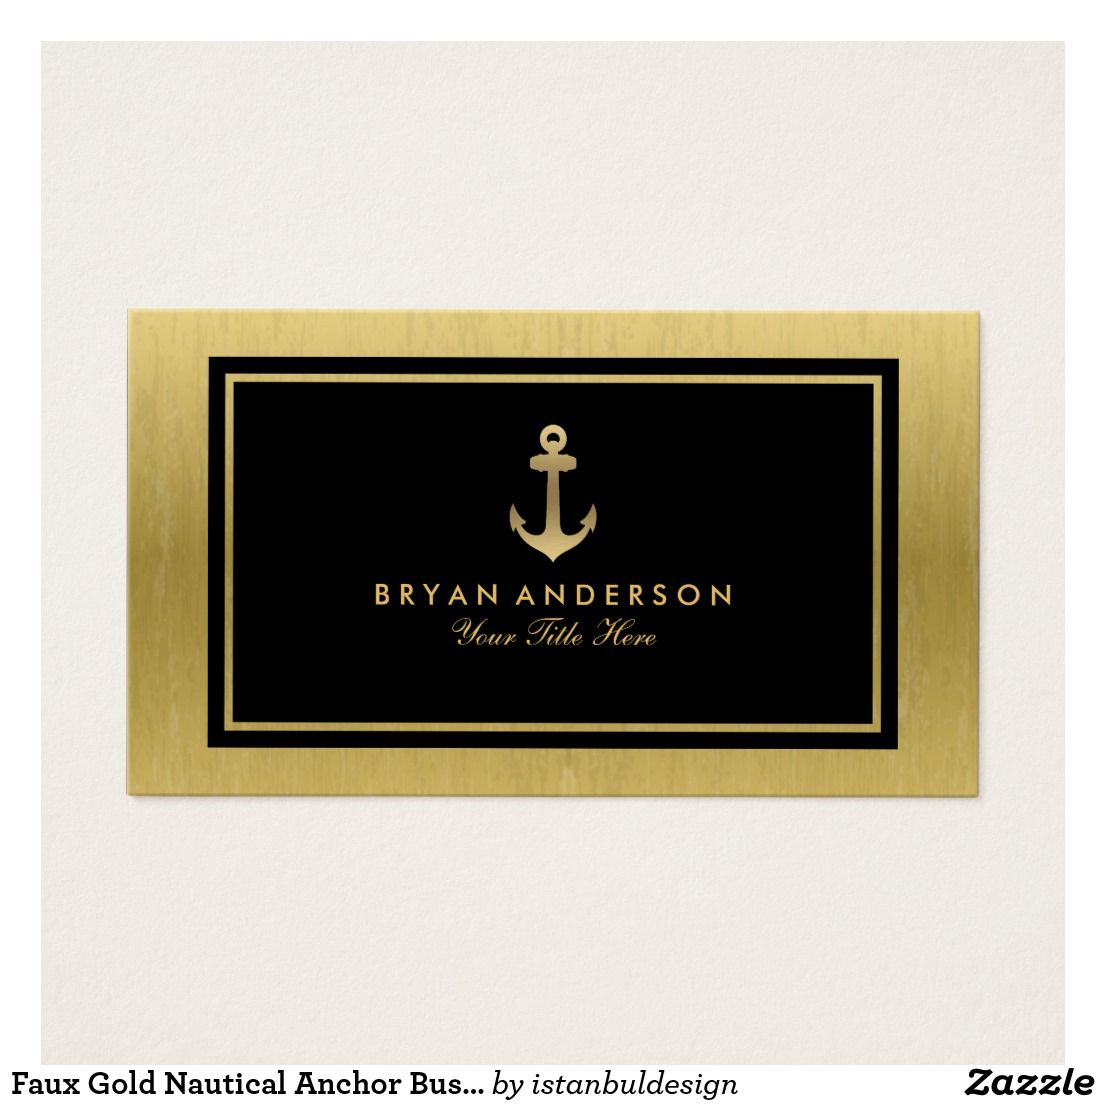 Faux Gold Nautical Anchor Business Card   Nautical Business Cards ...